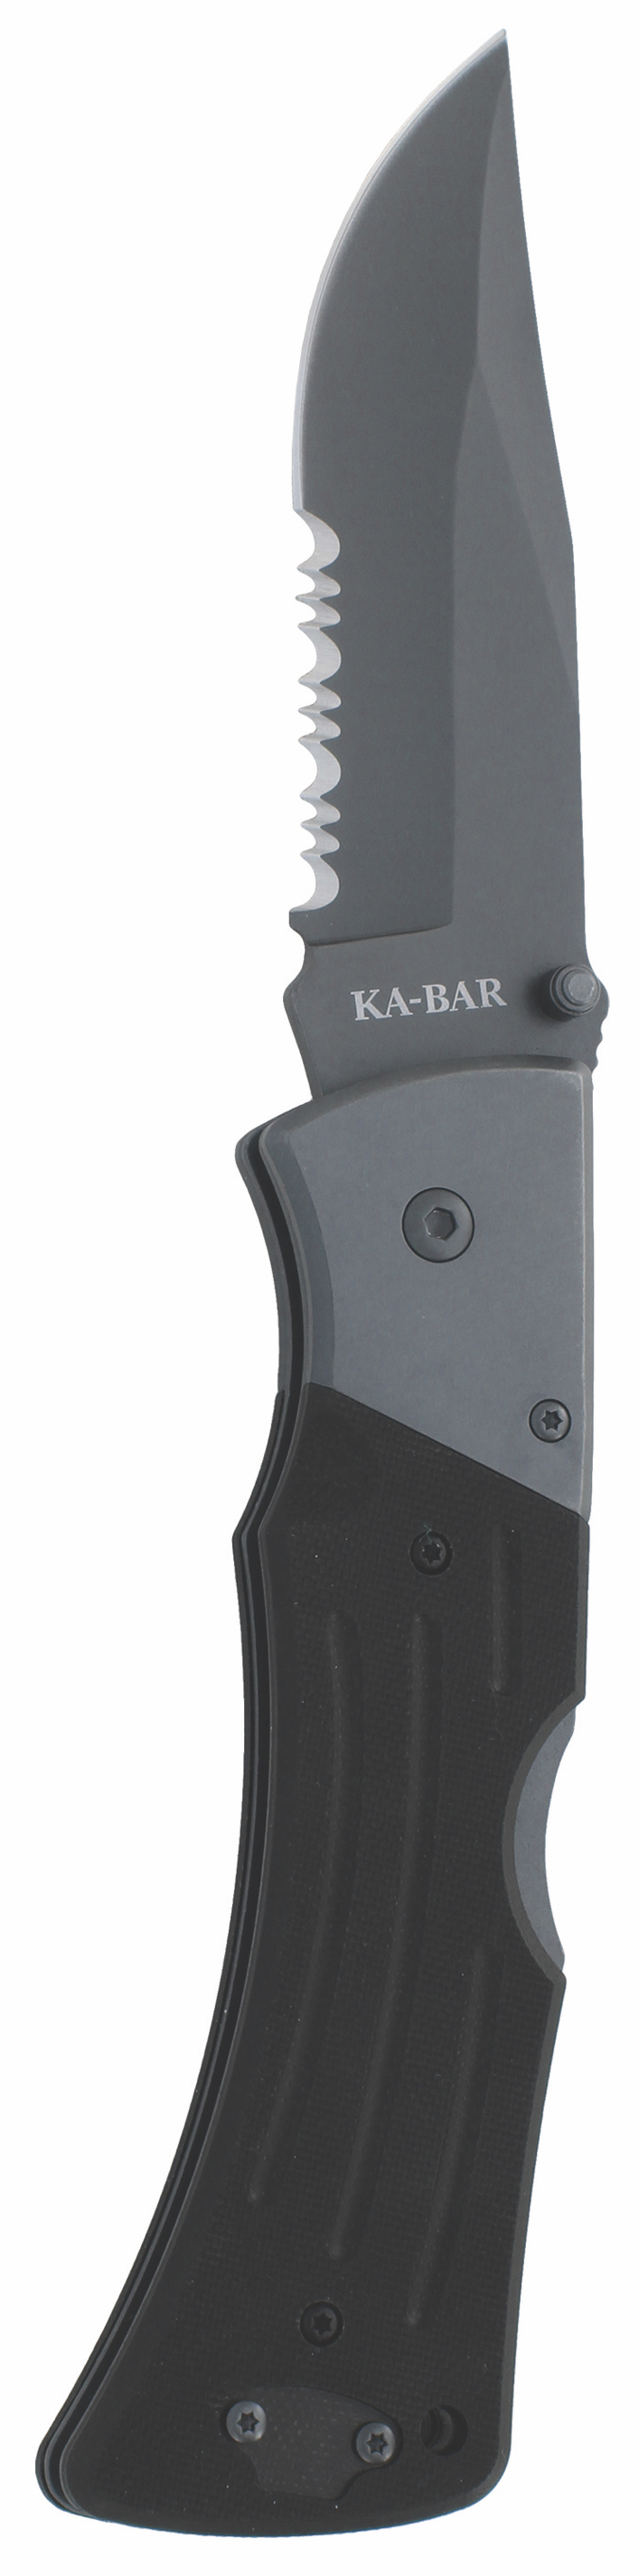 3063 - KA-BAR G10 MULE FOLDER II-BLACK, SERR EDGE